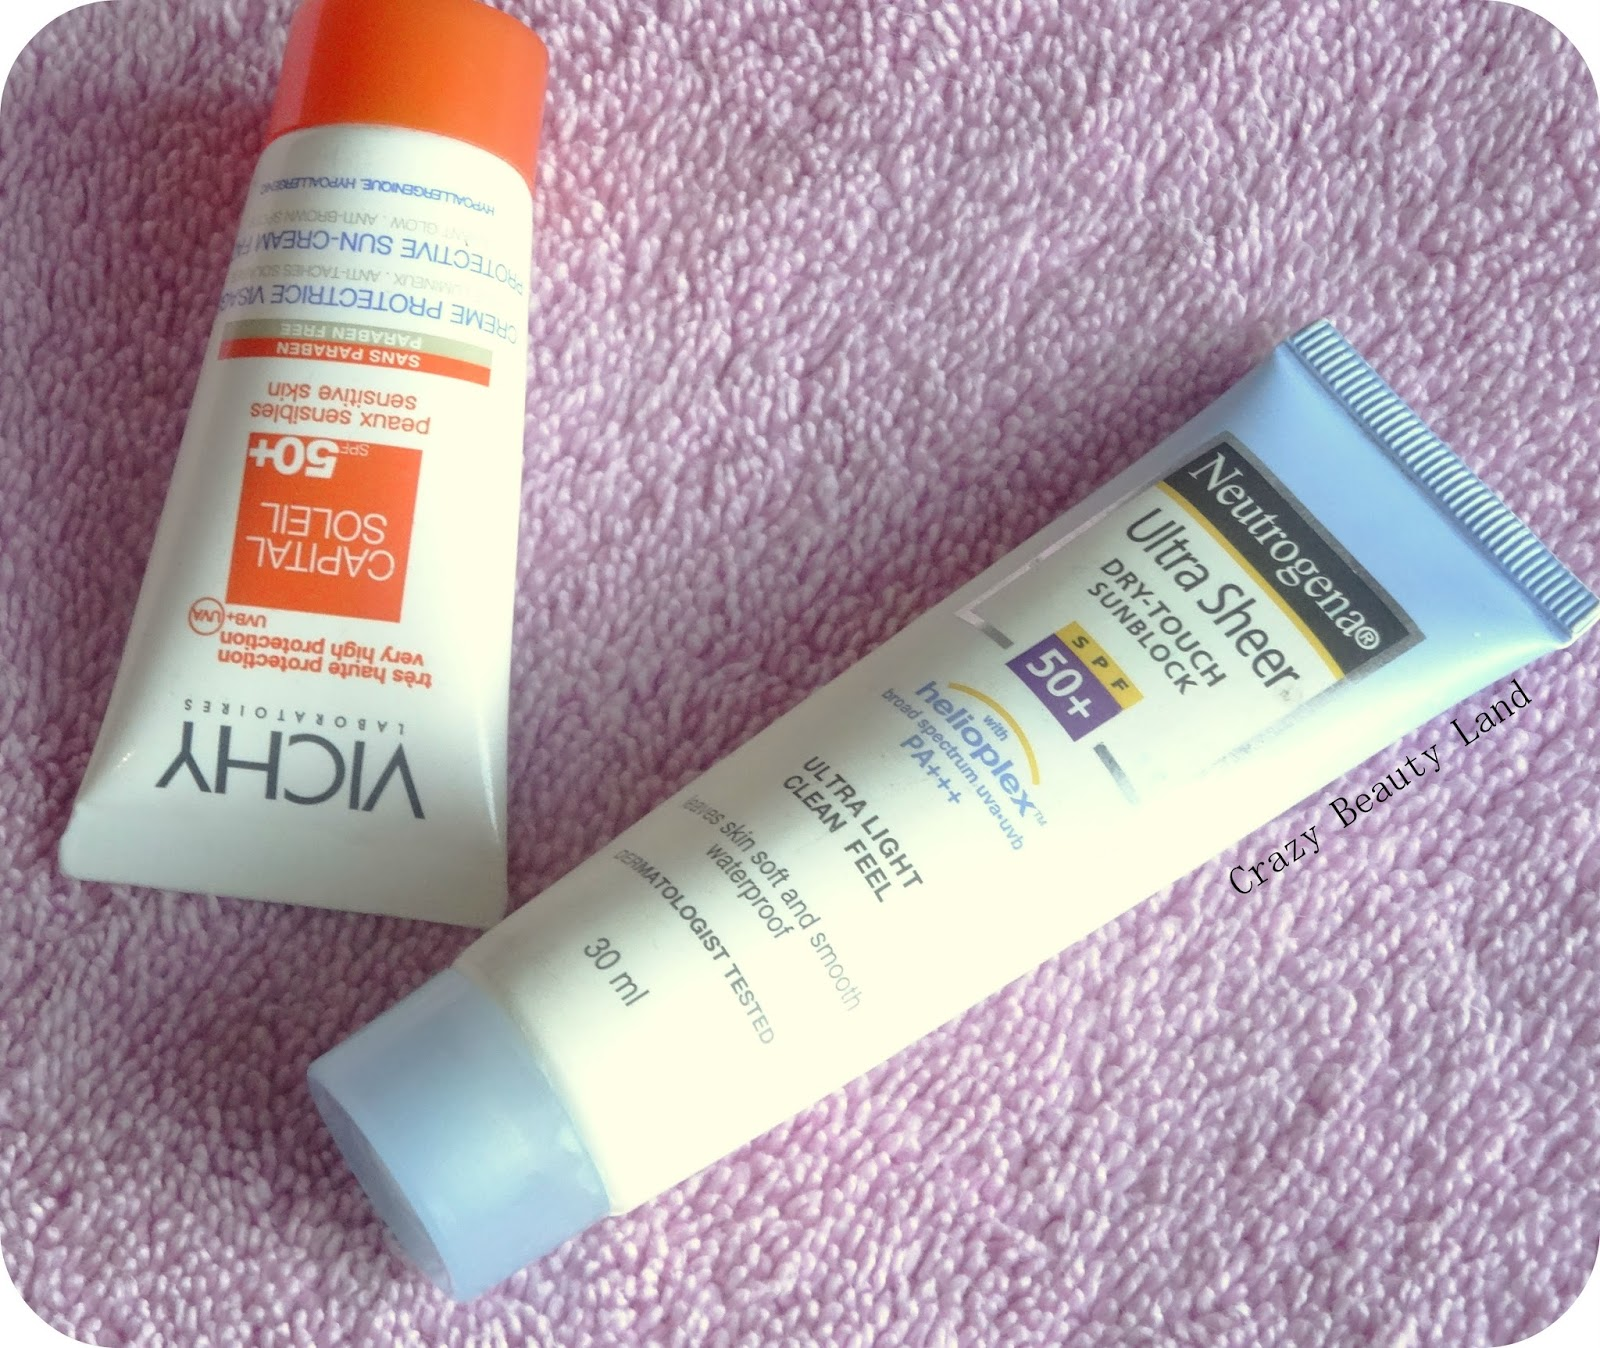 Vichy Capital Soleil Sunscreen, Neutrogena Dry Touch Sunscreen